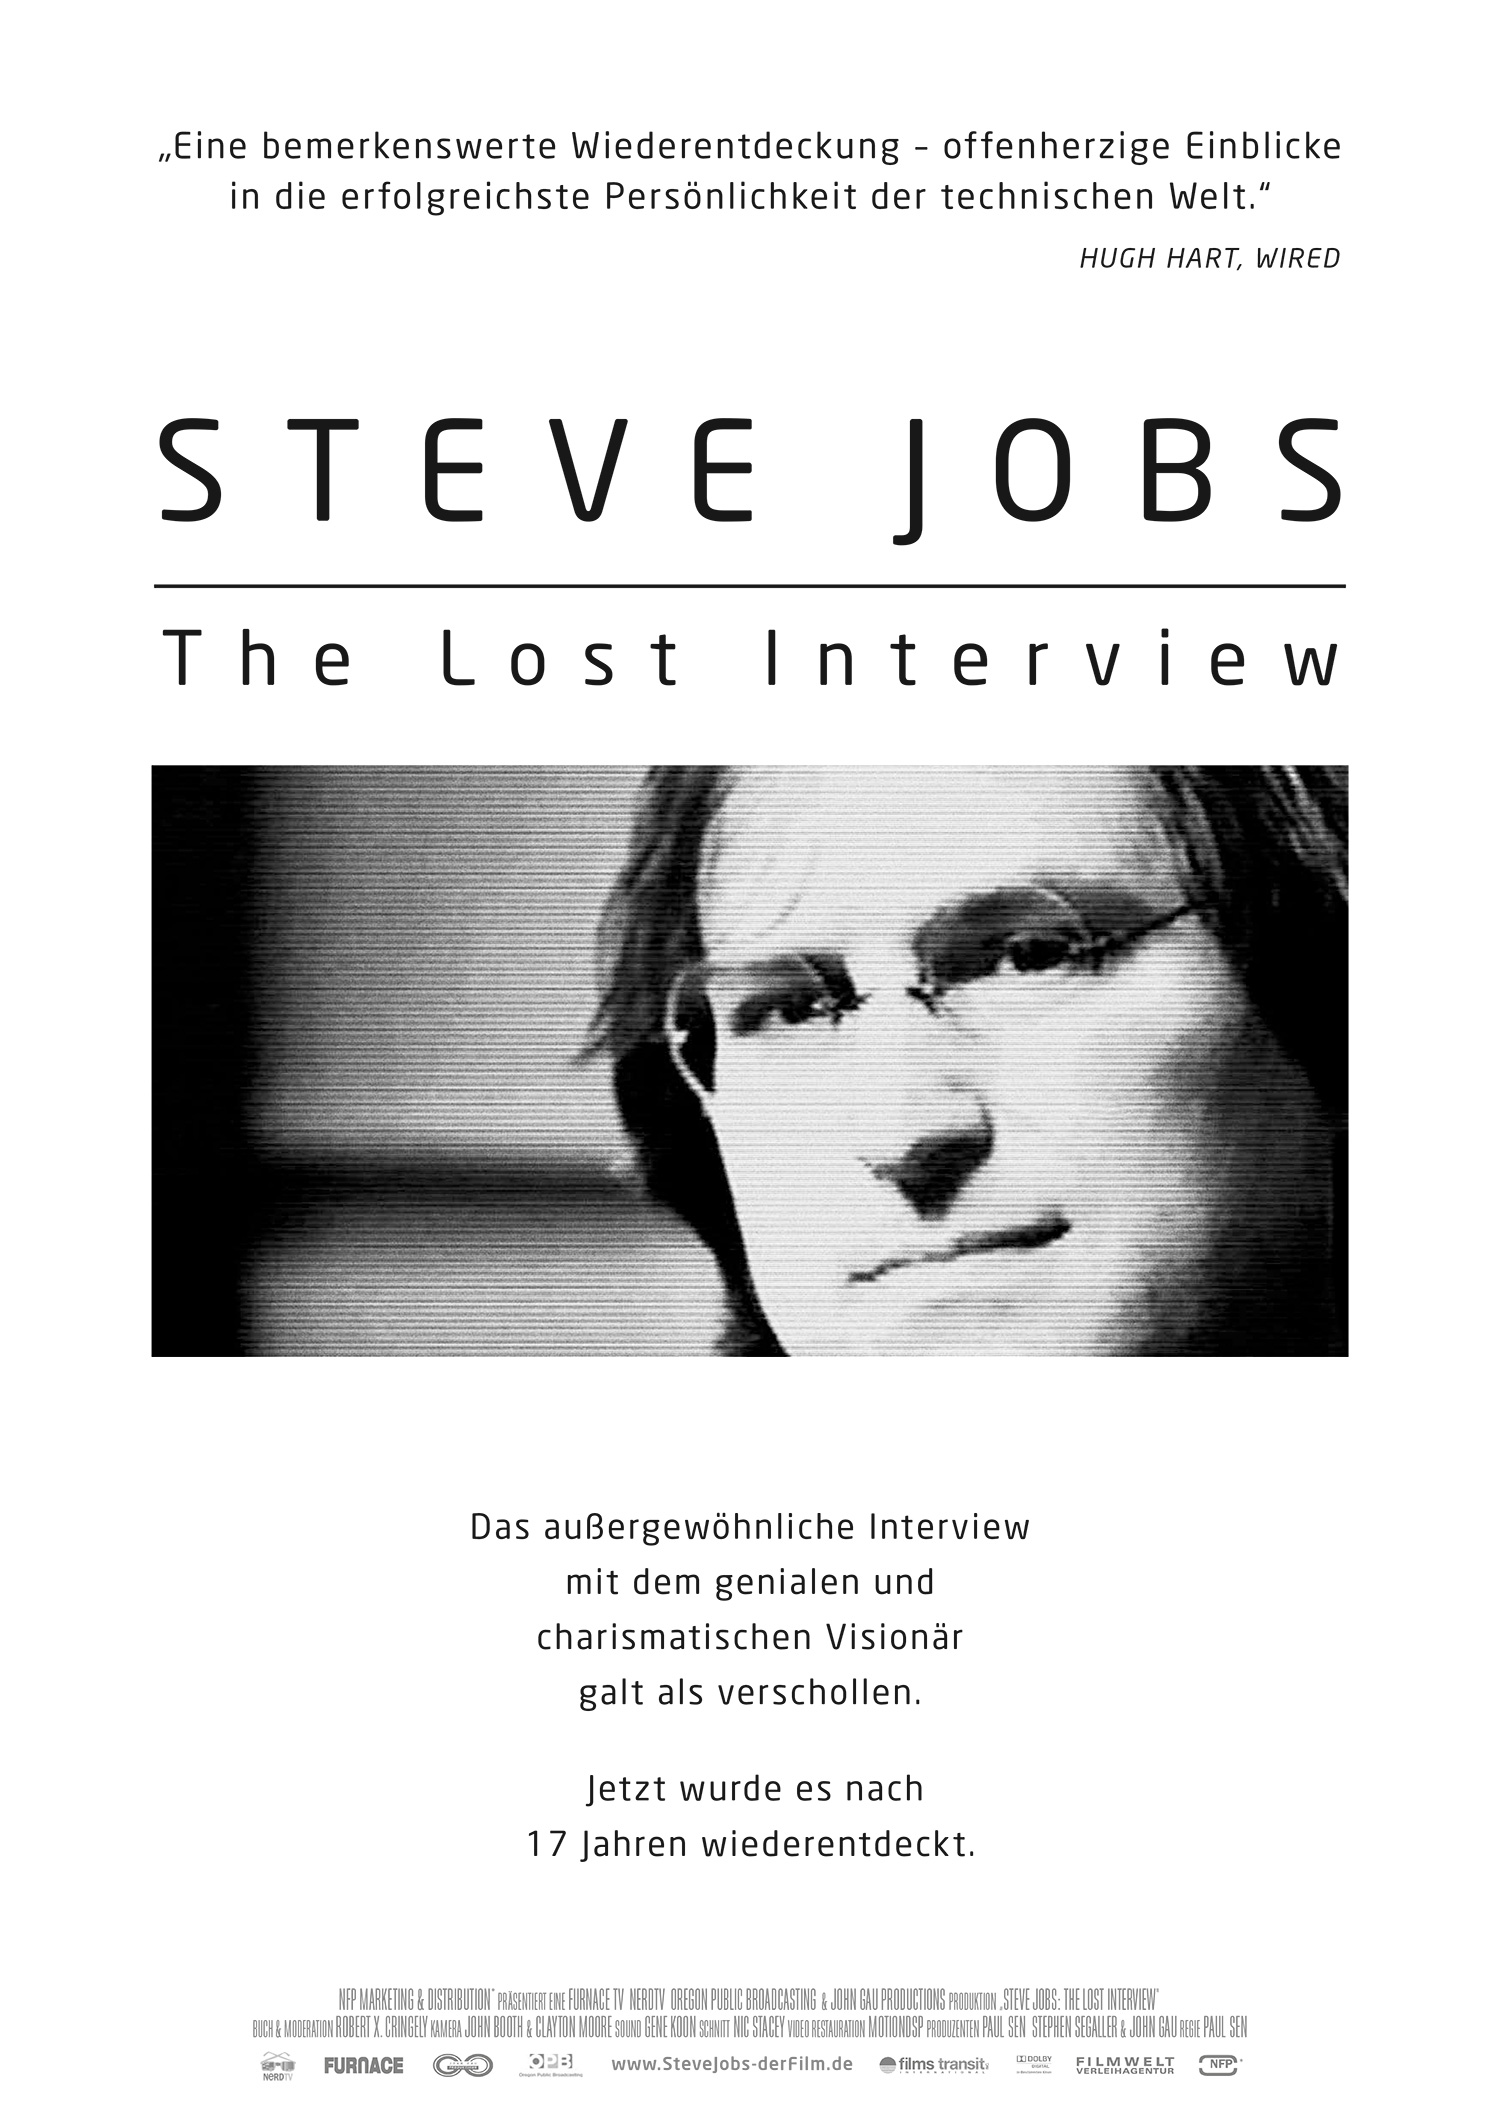 "NFP*<a href=""/steve-jobs"">→</a><strong>Adaption</strong>"